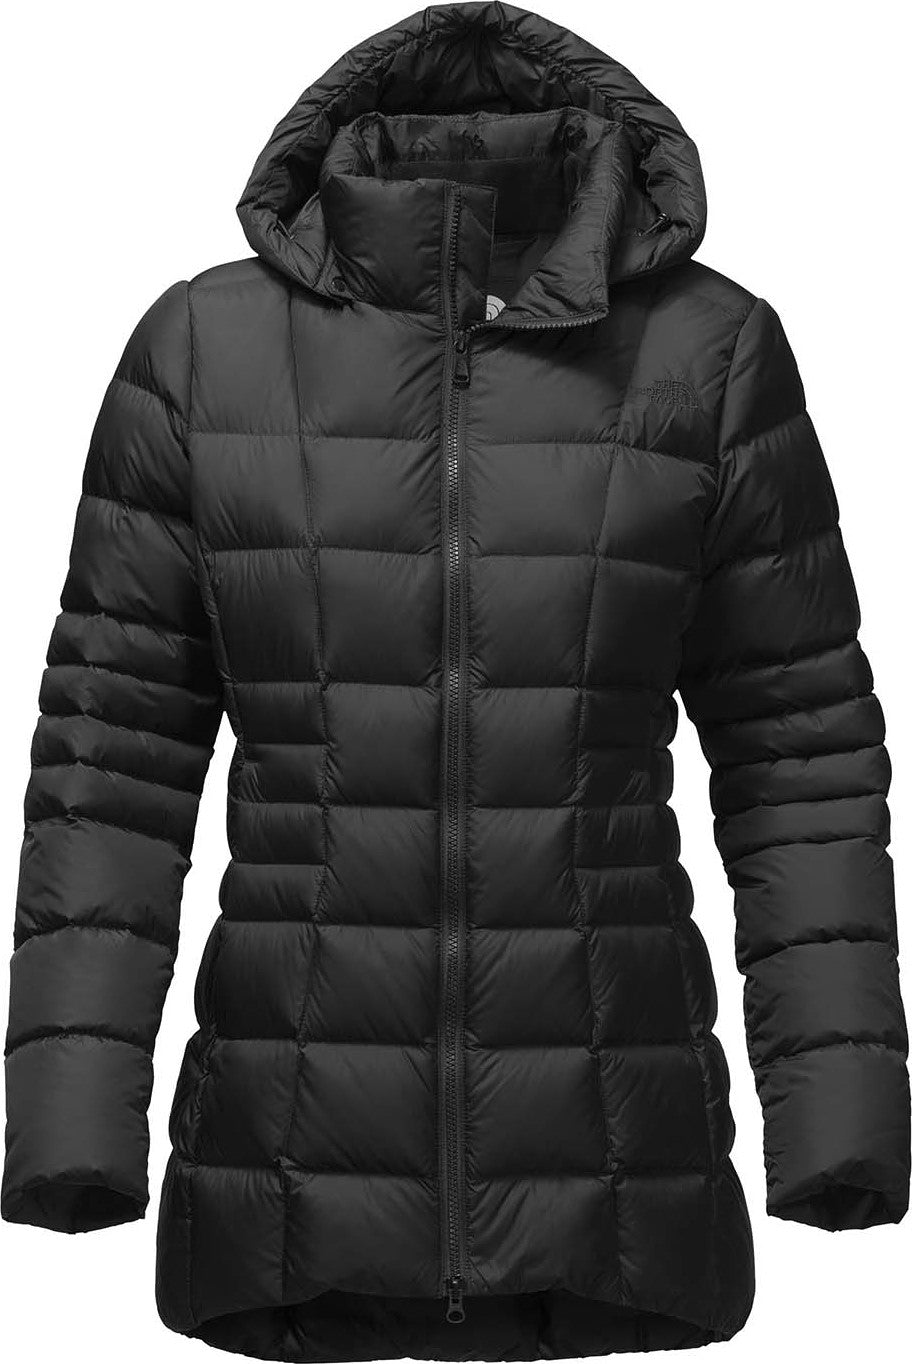 ae88ed54f0 The North Face Women's Transit Jacket Ii | Altitude Sports